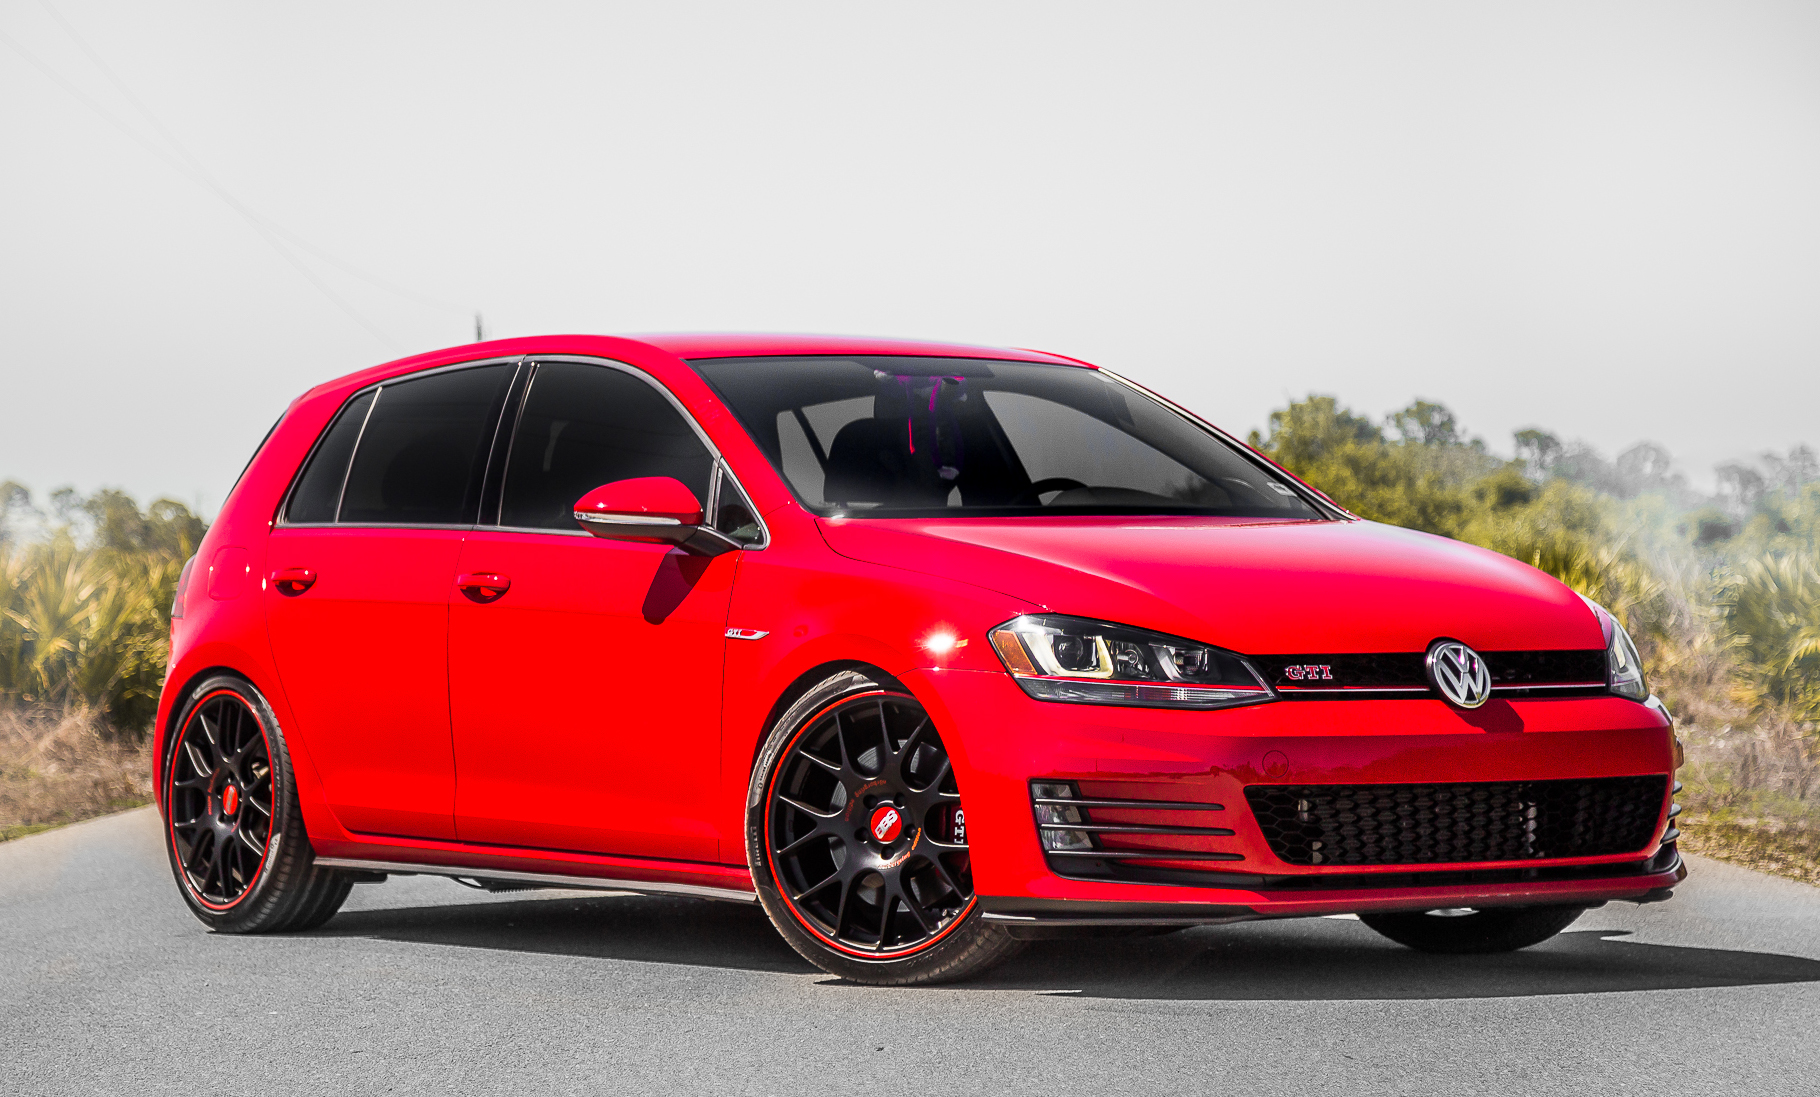 bbs wheels on vw gti front three-quarter